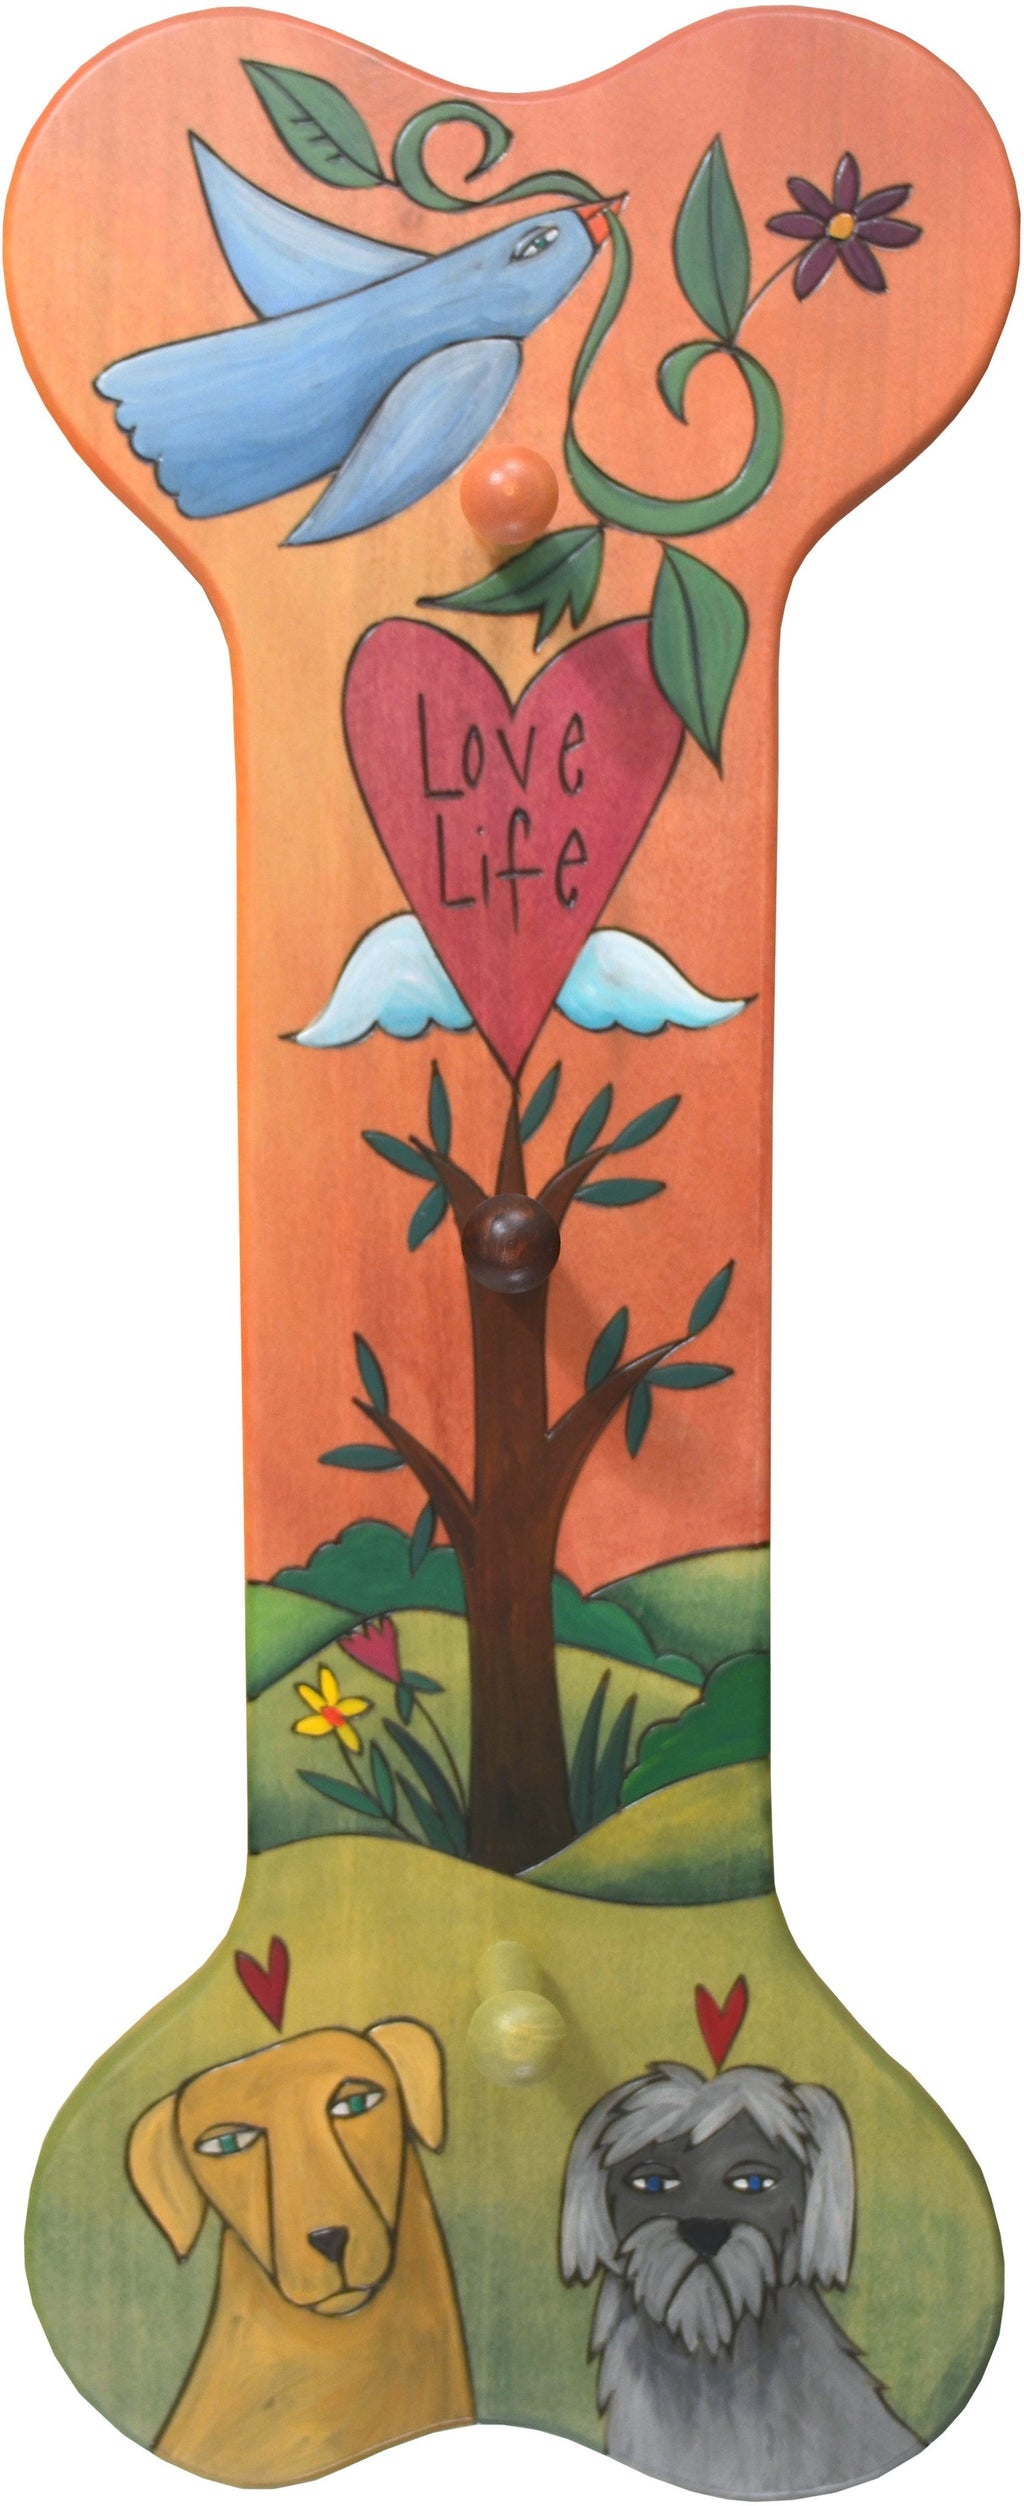 Vertical Dog Leash Rack –  Dog bone shaped leash rack with tree of life, pups, and additional painted elements